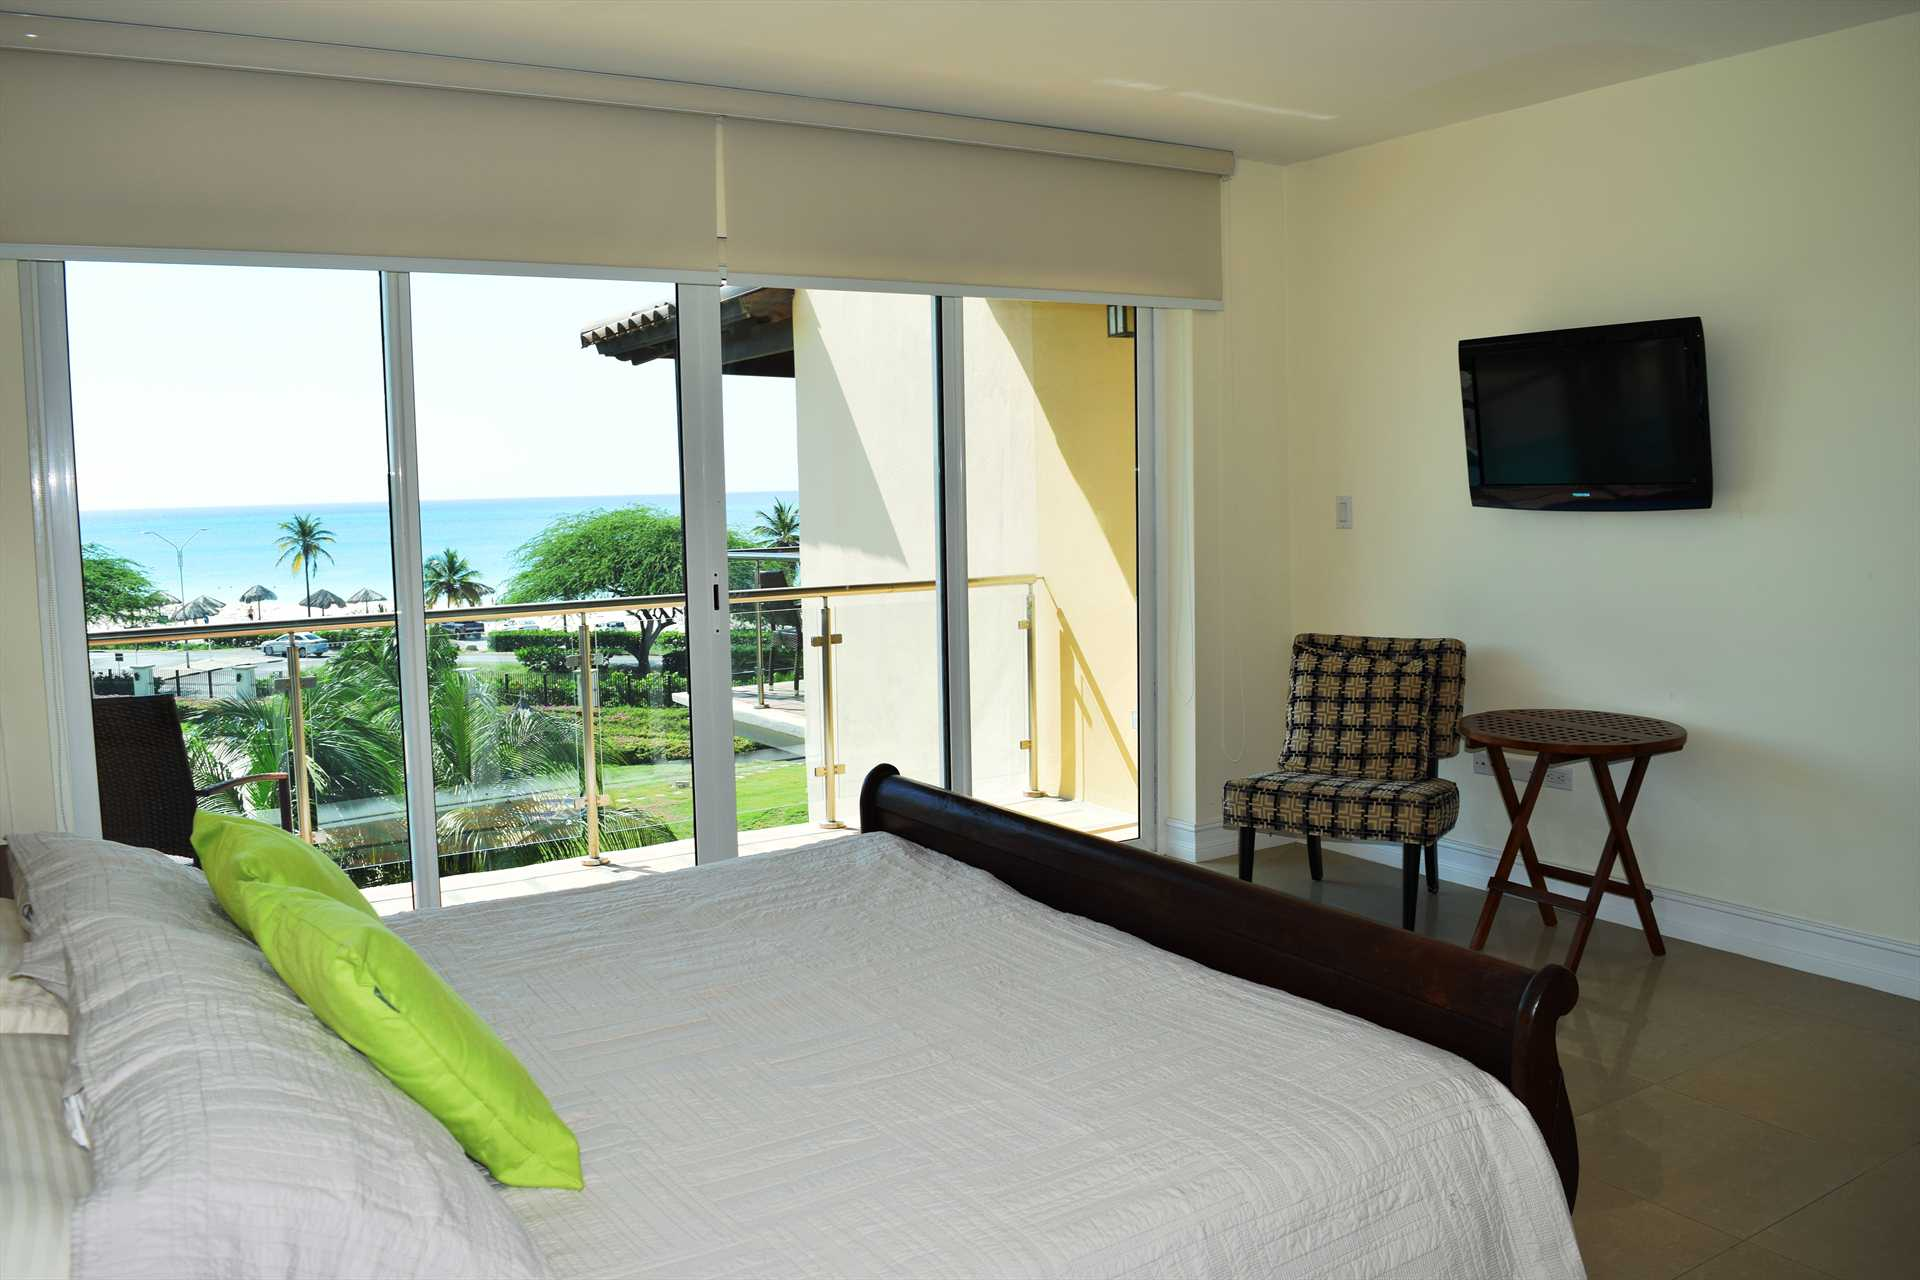 Wake up in the morning and savor the ocean view from your bed!